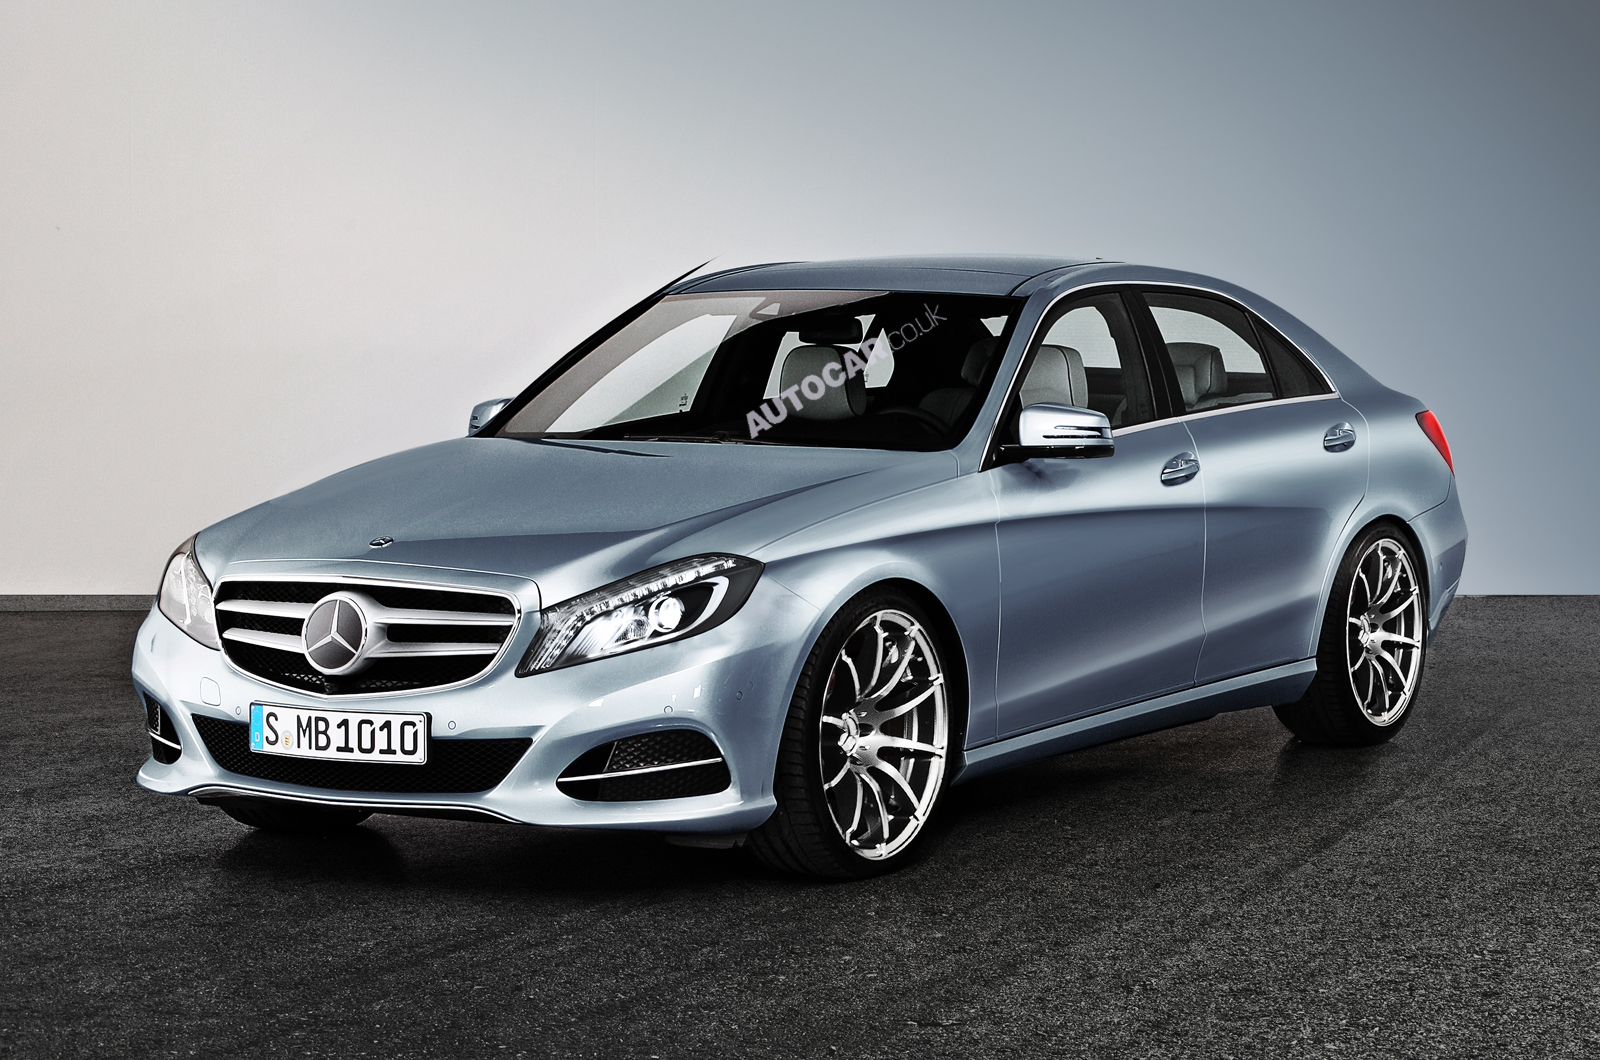 The fourth-generation Mercedes-Benz C-class will reportedly come with